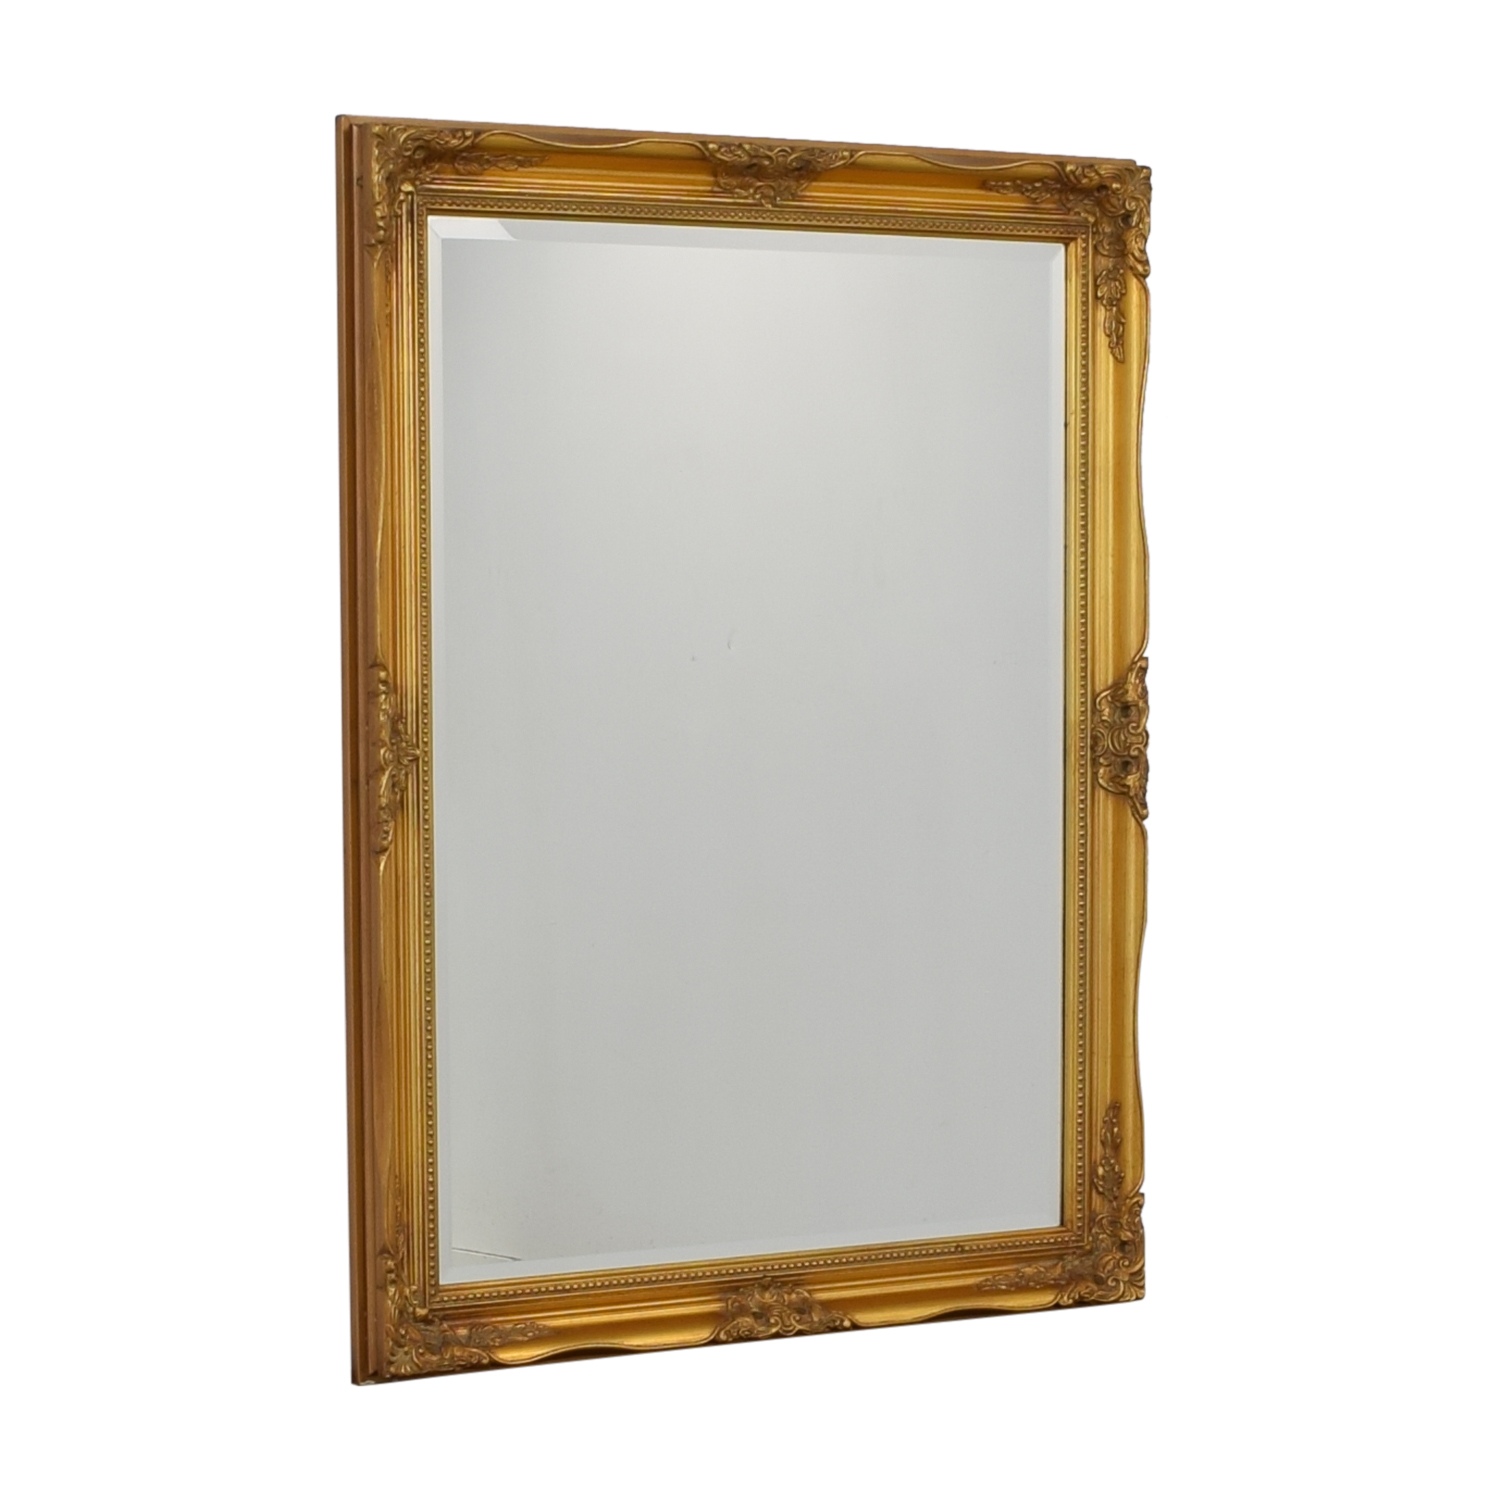 Large Gold Framed Mirror used